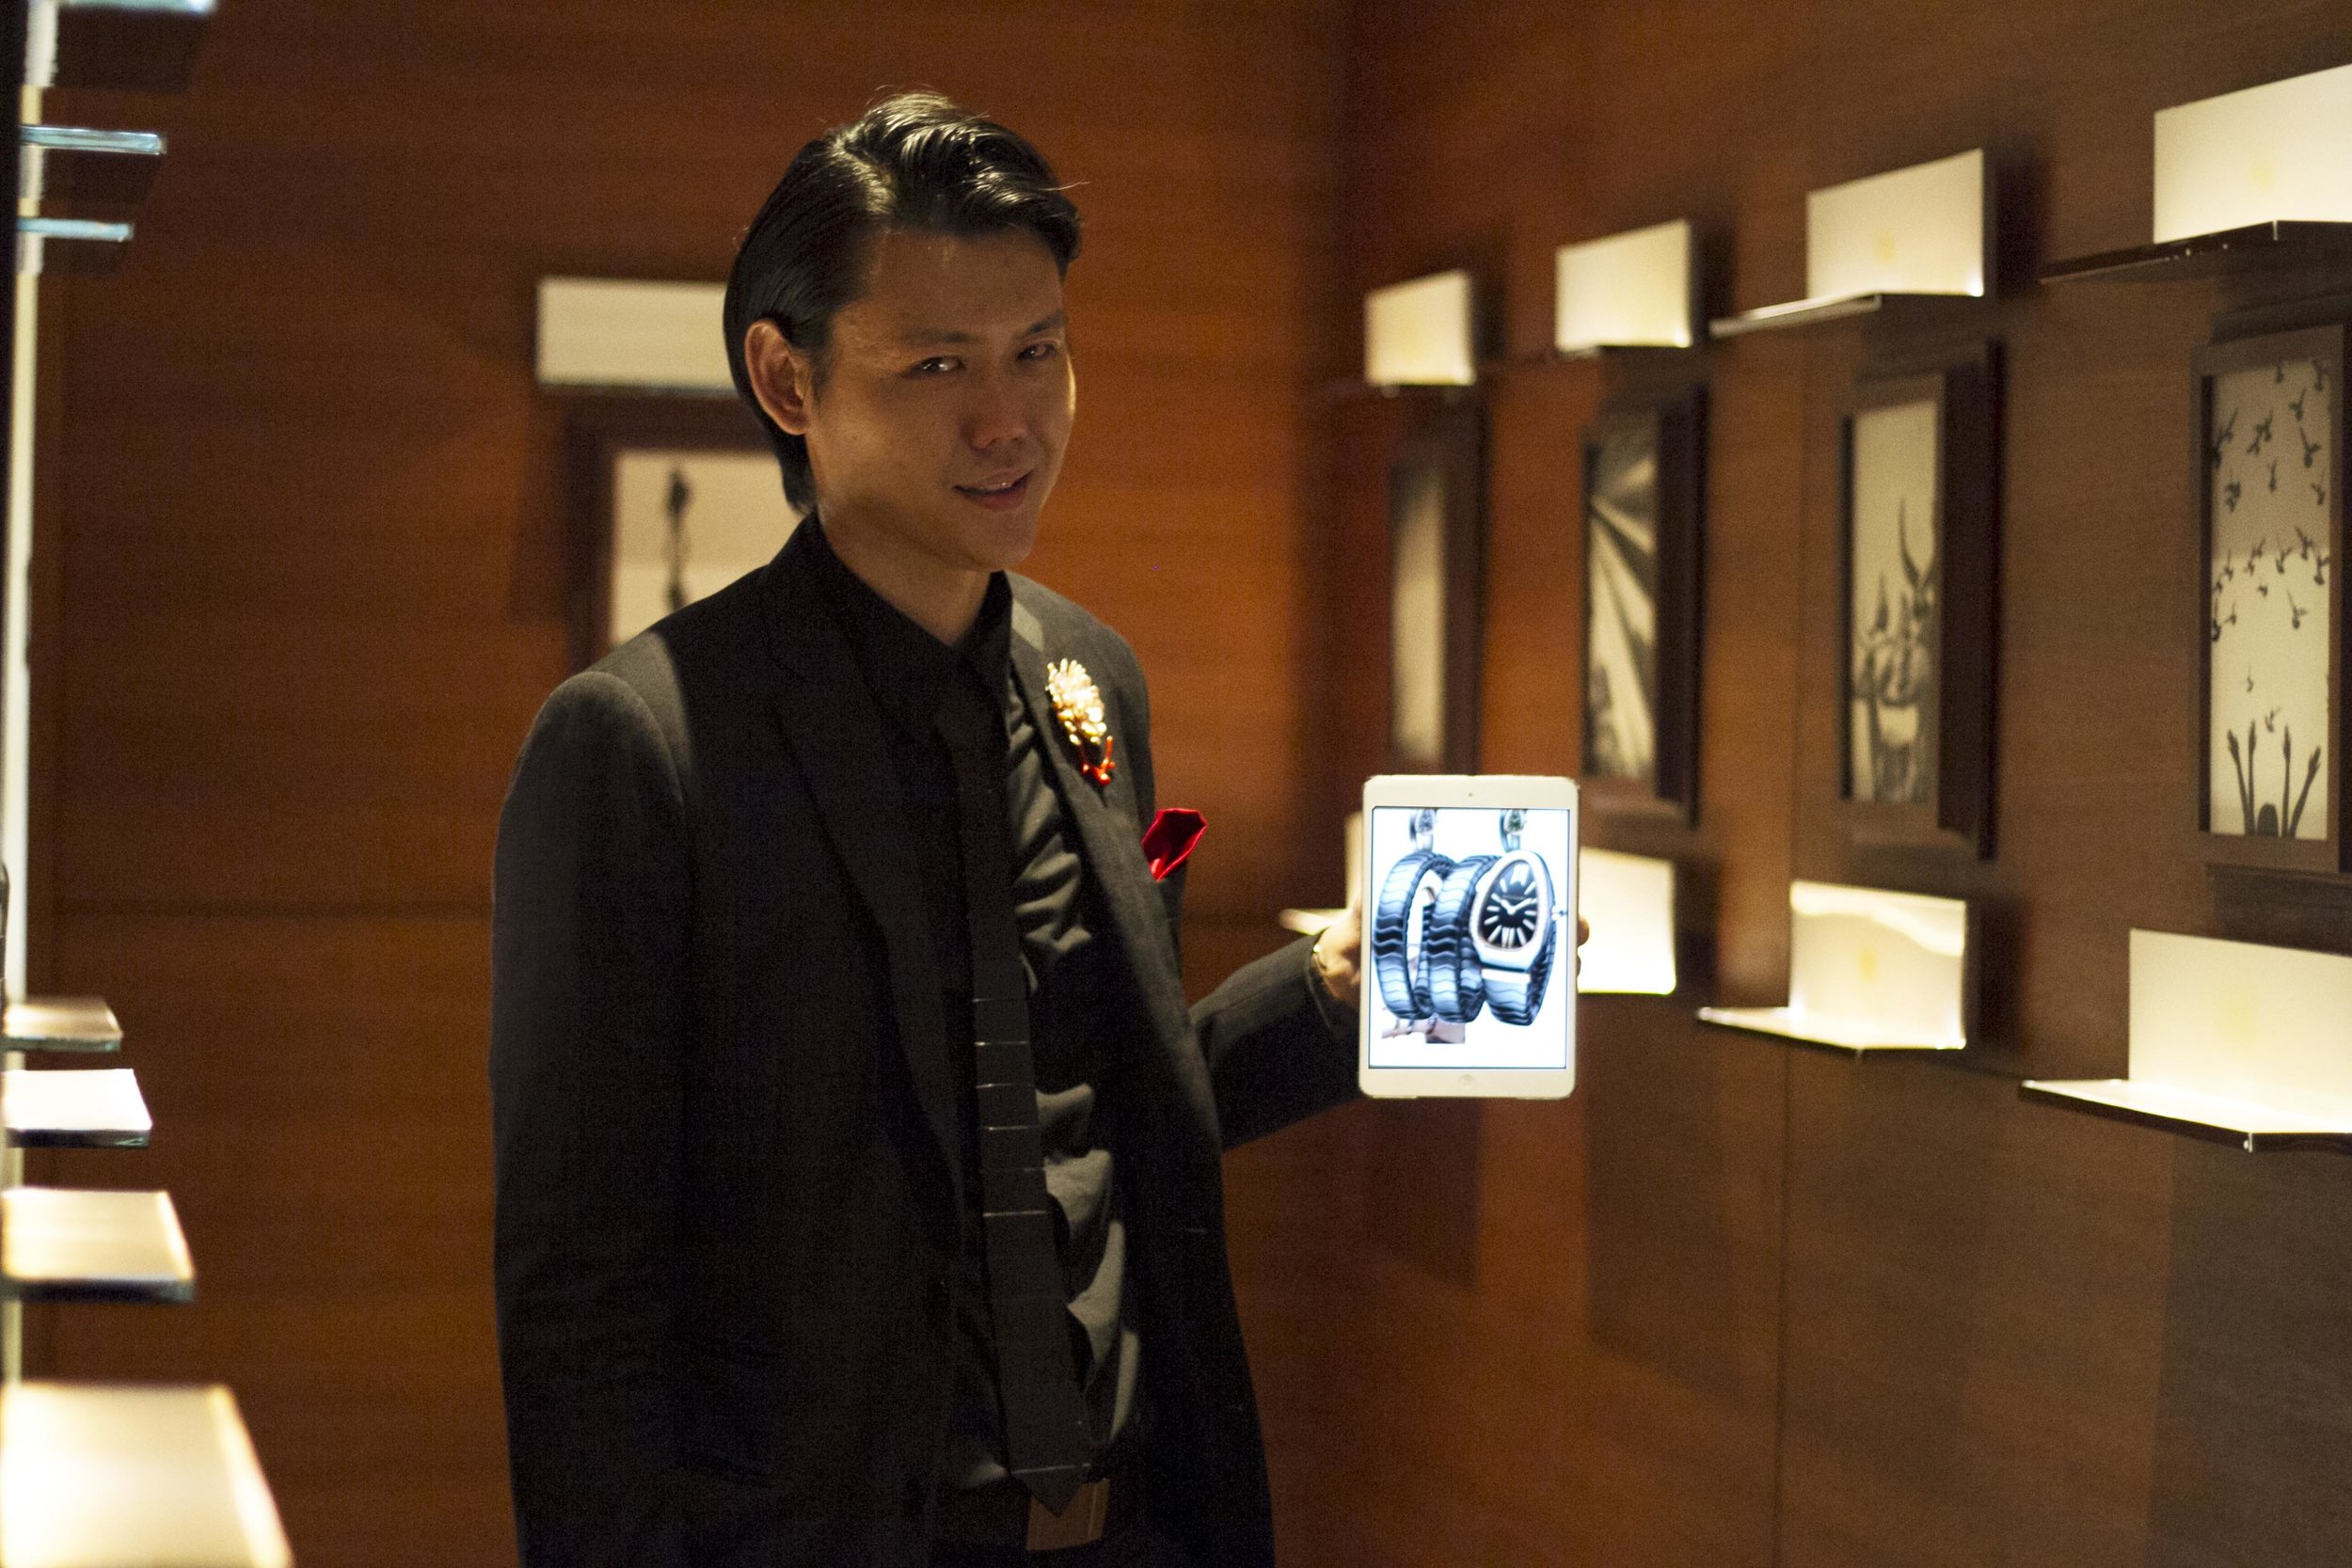 Alexander Yuen Luxury iPad Magic Brand